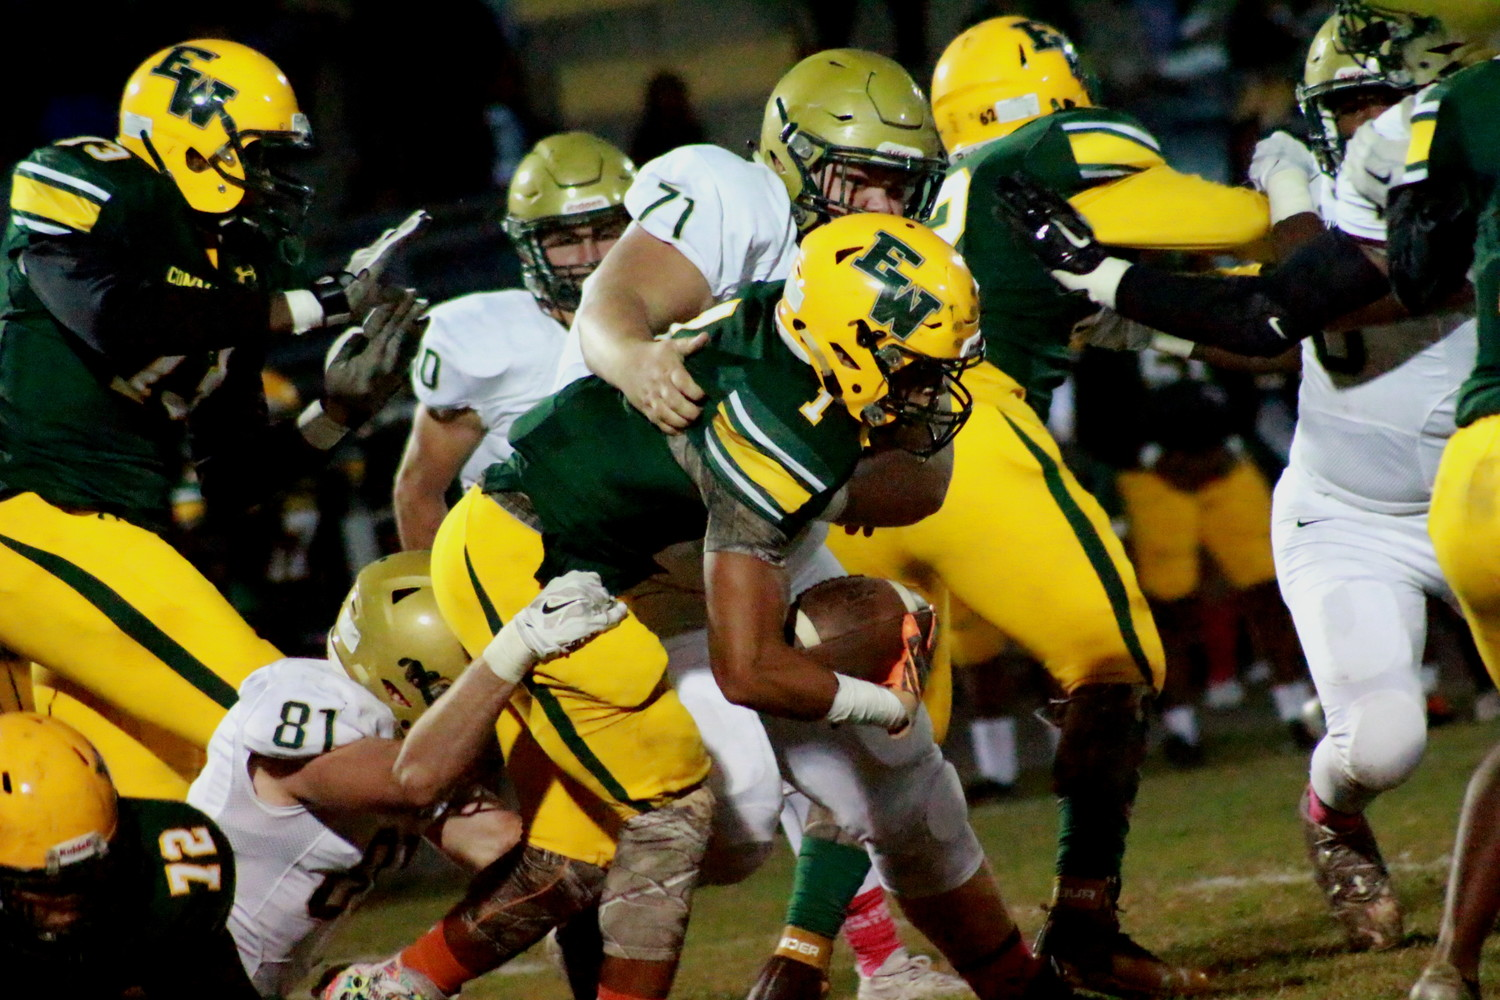 Fleming Island defensive linemen Jake Libretto, No. 81, and Will Hudgins, No. 71, 